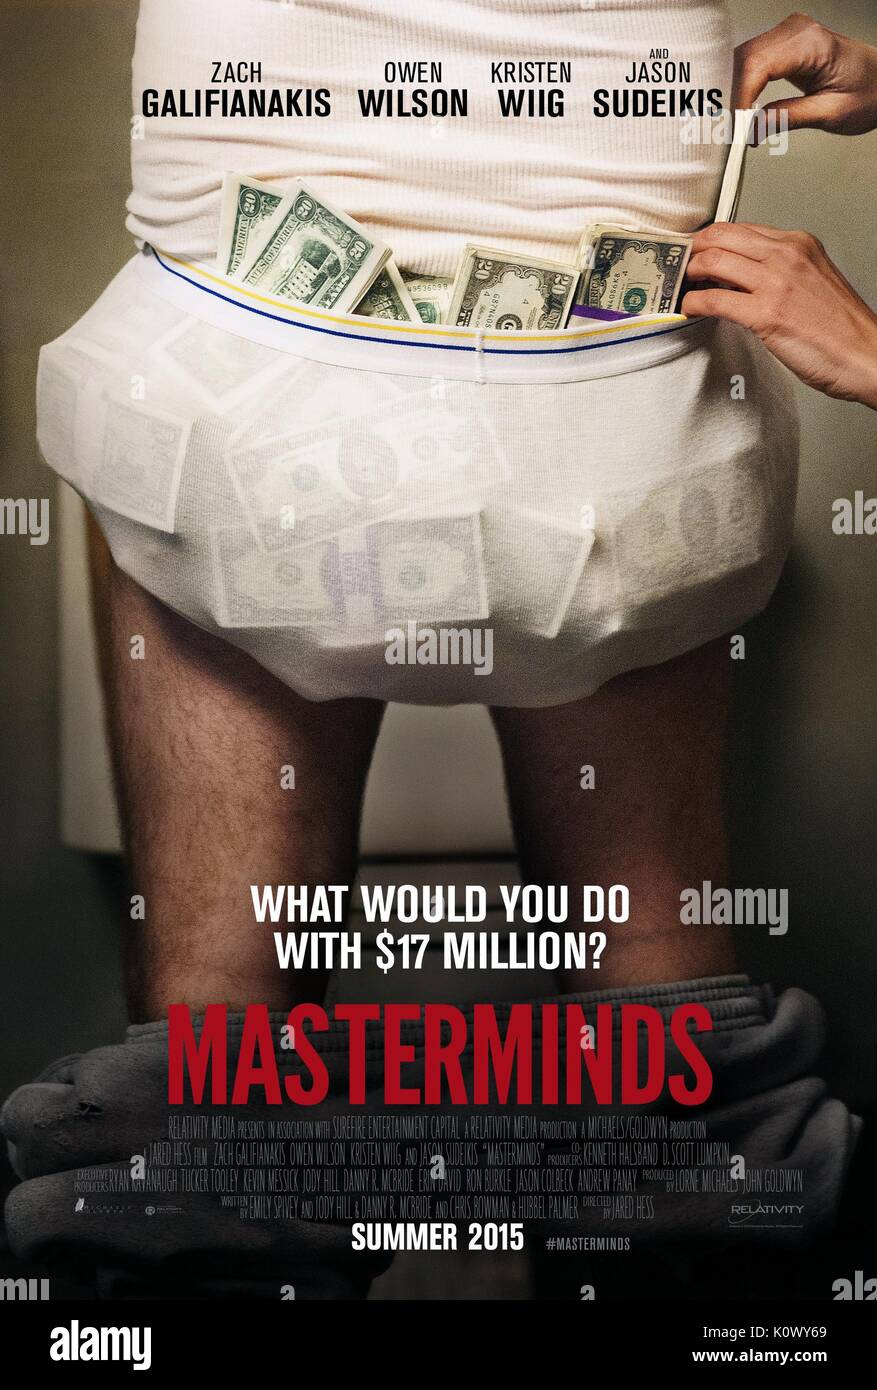 MOVIE POSTER POSTER MASTERMINDS (2015) - Stock Image